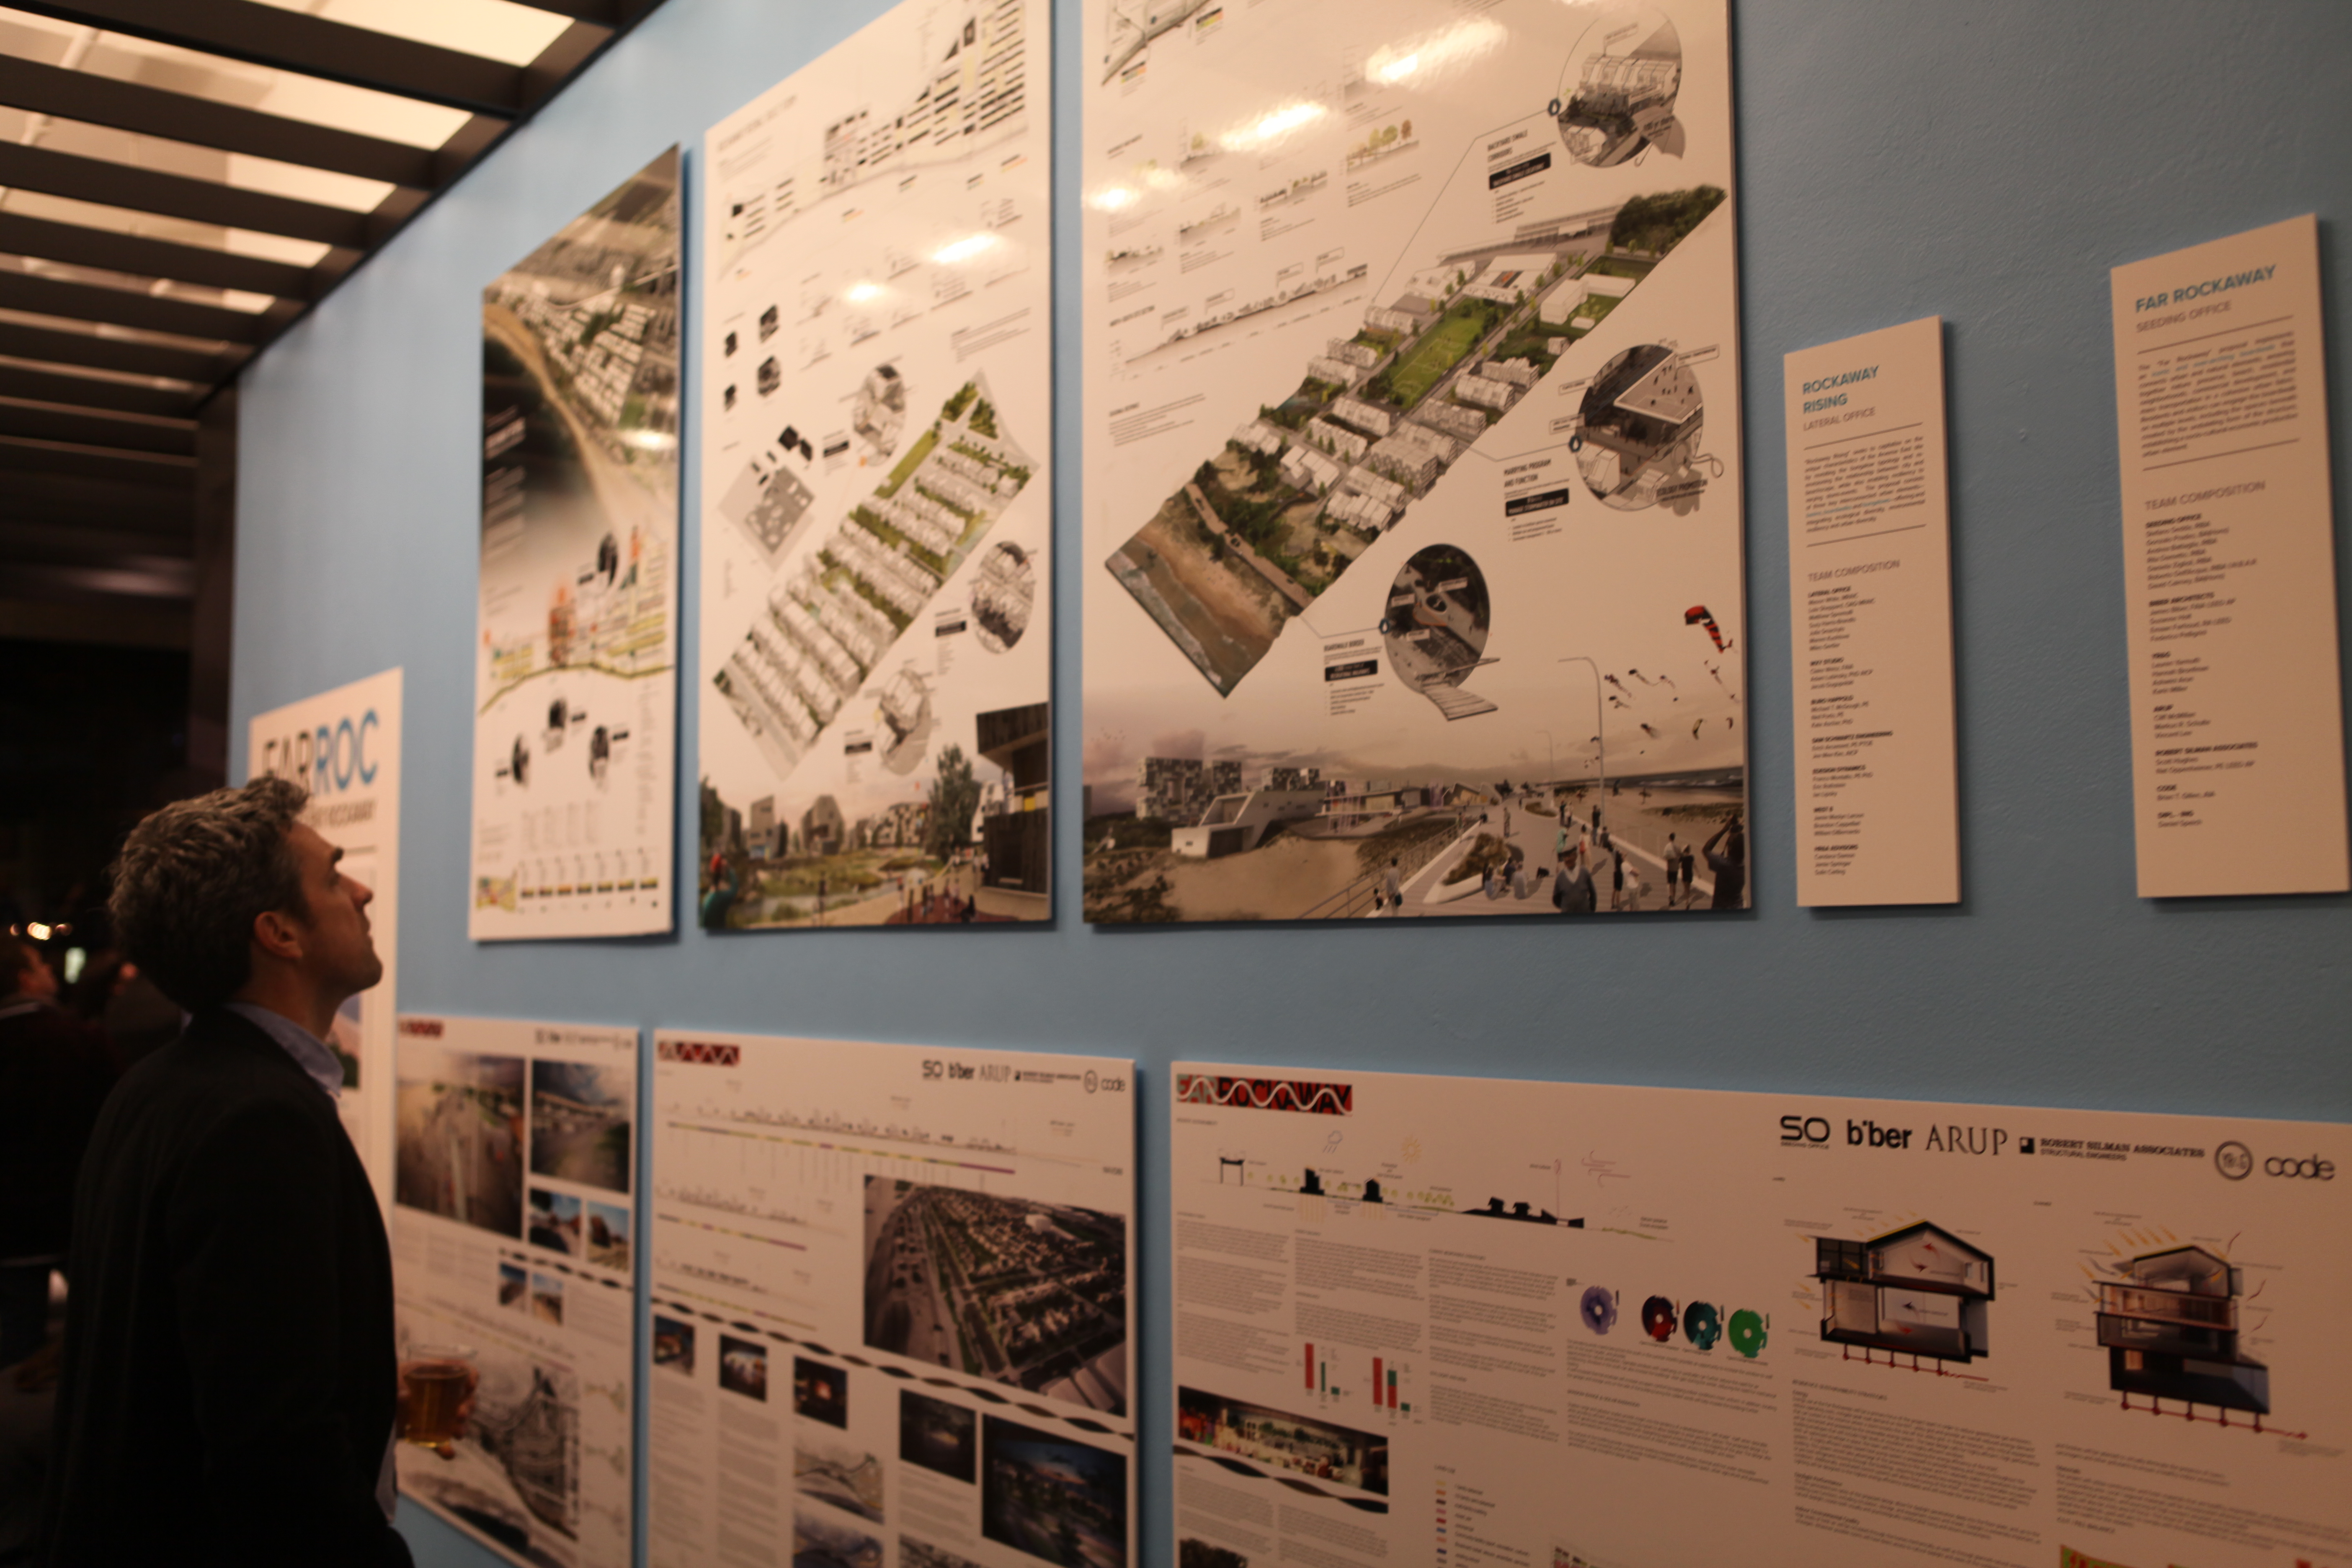 On View: At the Center for Architecture and About Town